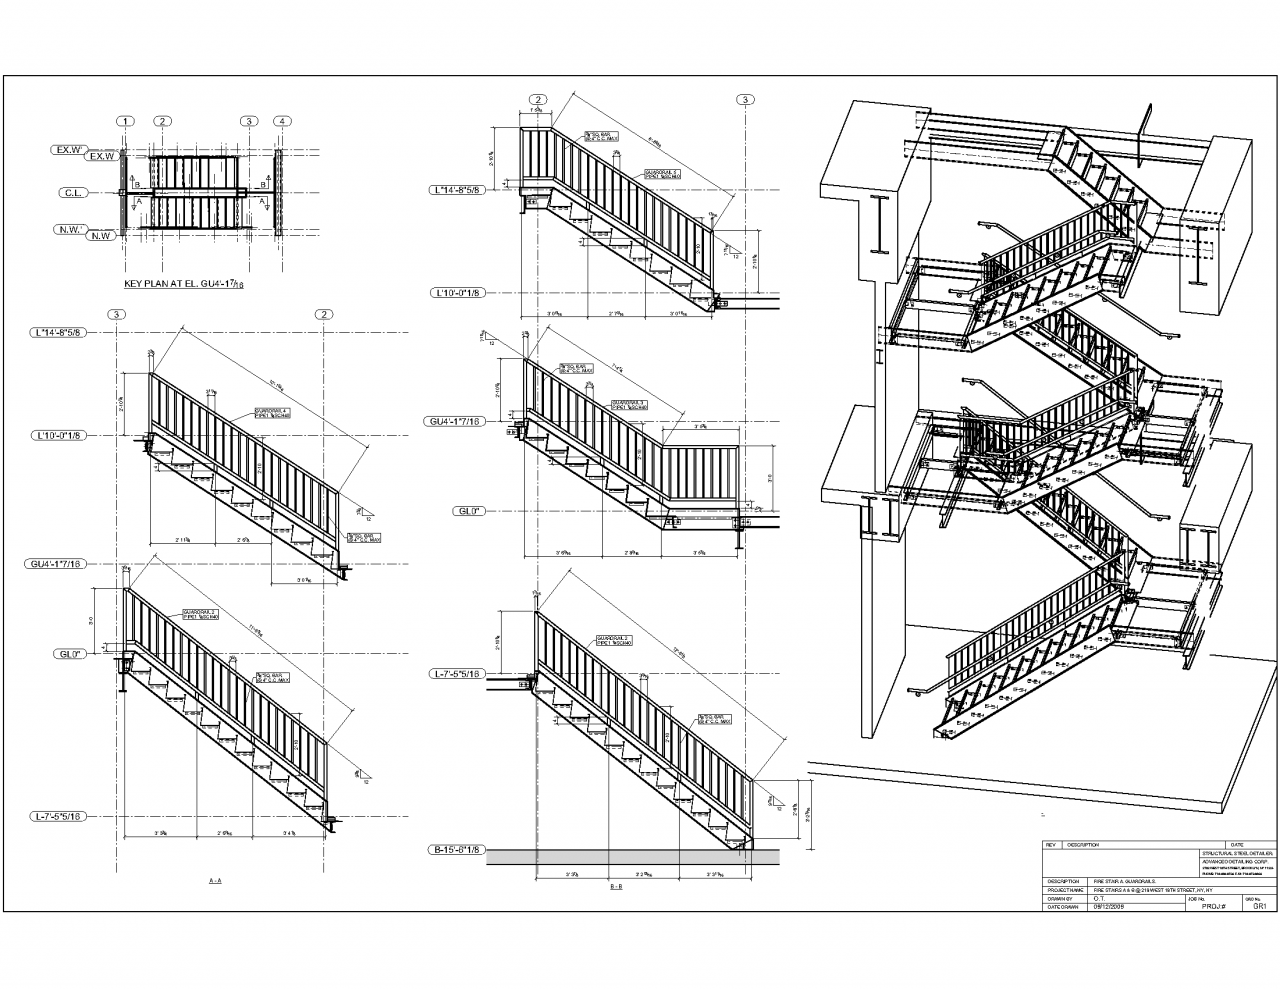 Staircase Plans Drawing Isometric View And Elevations Architecture In 2019